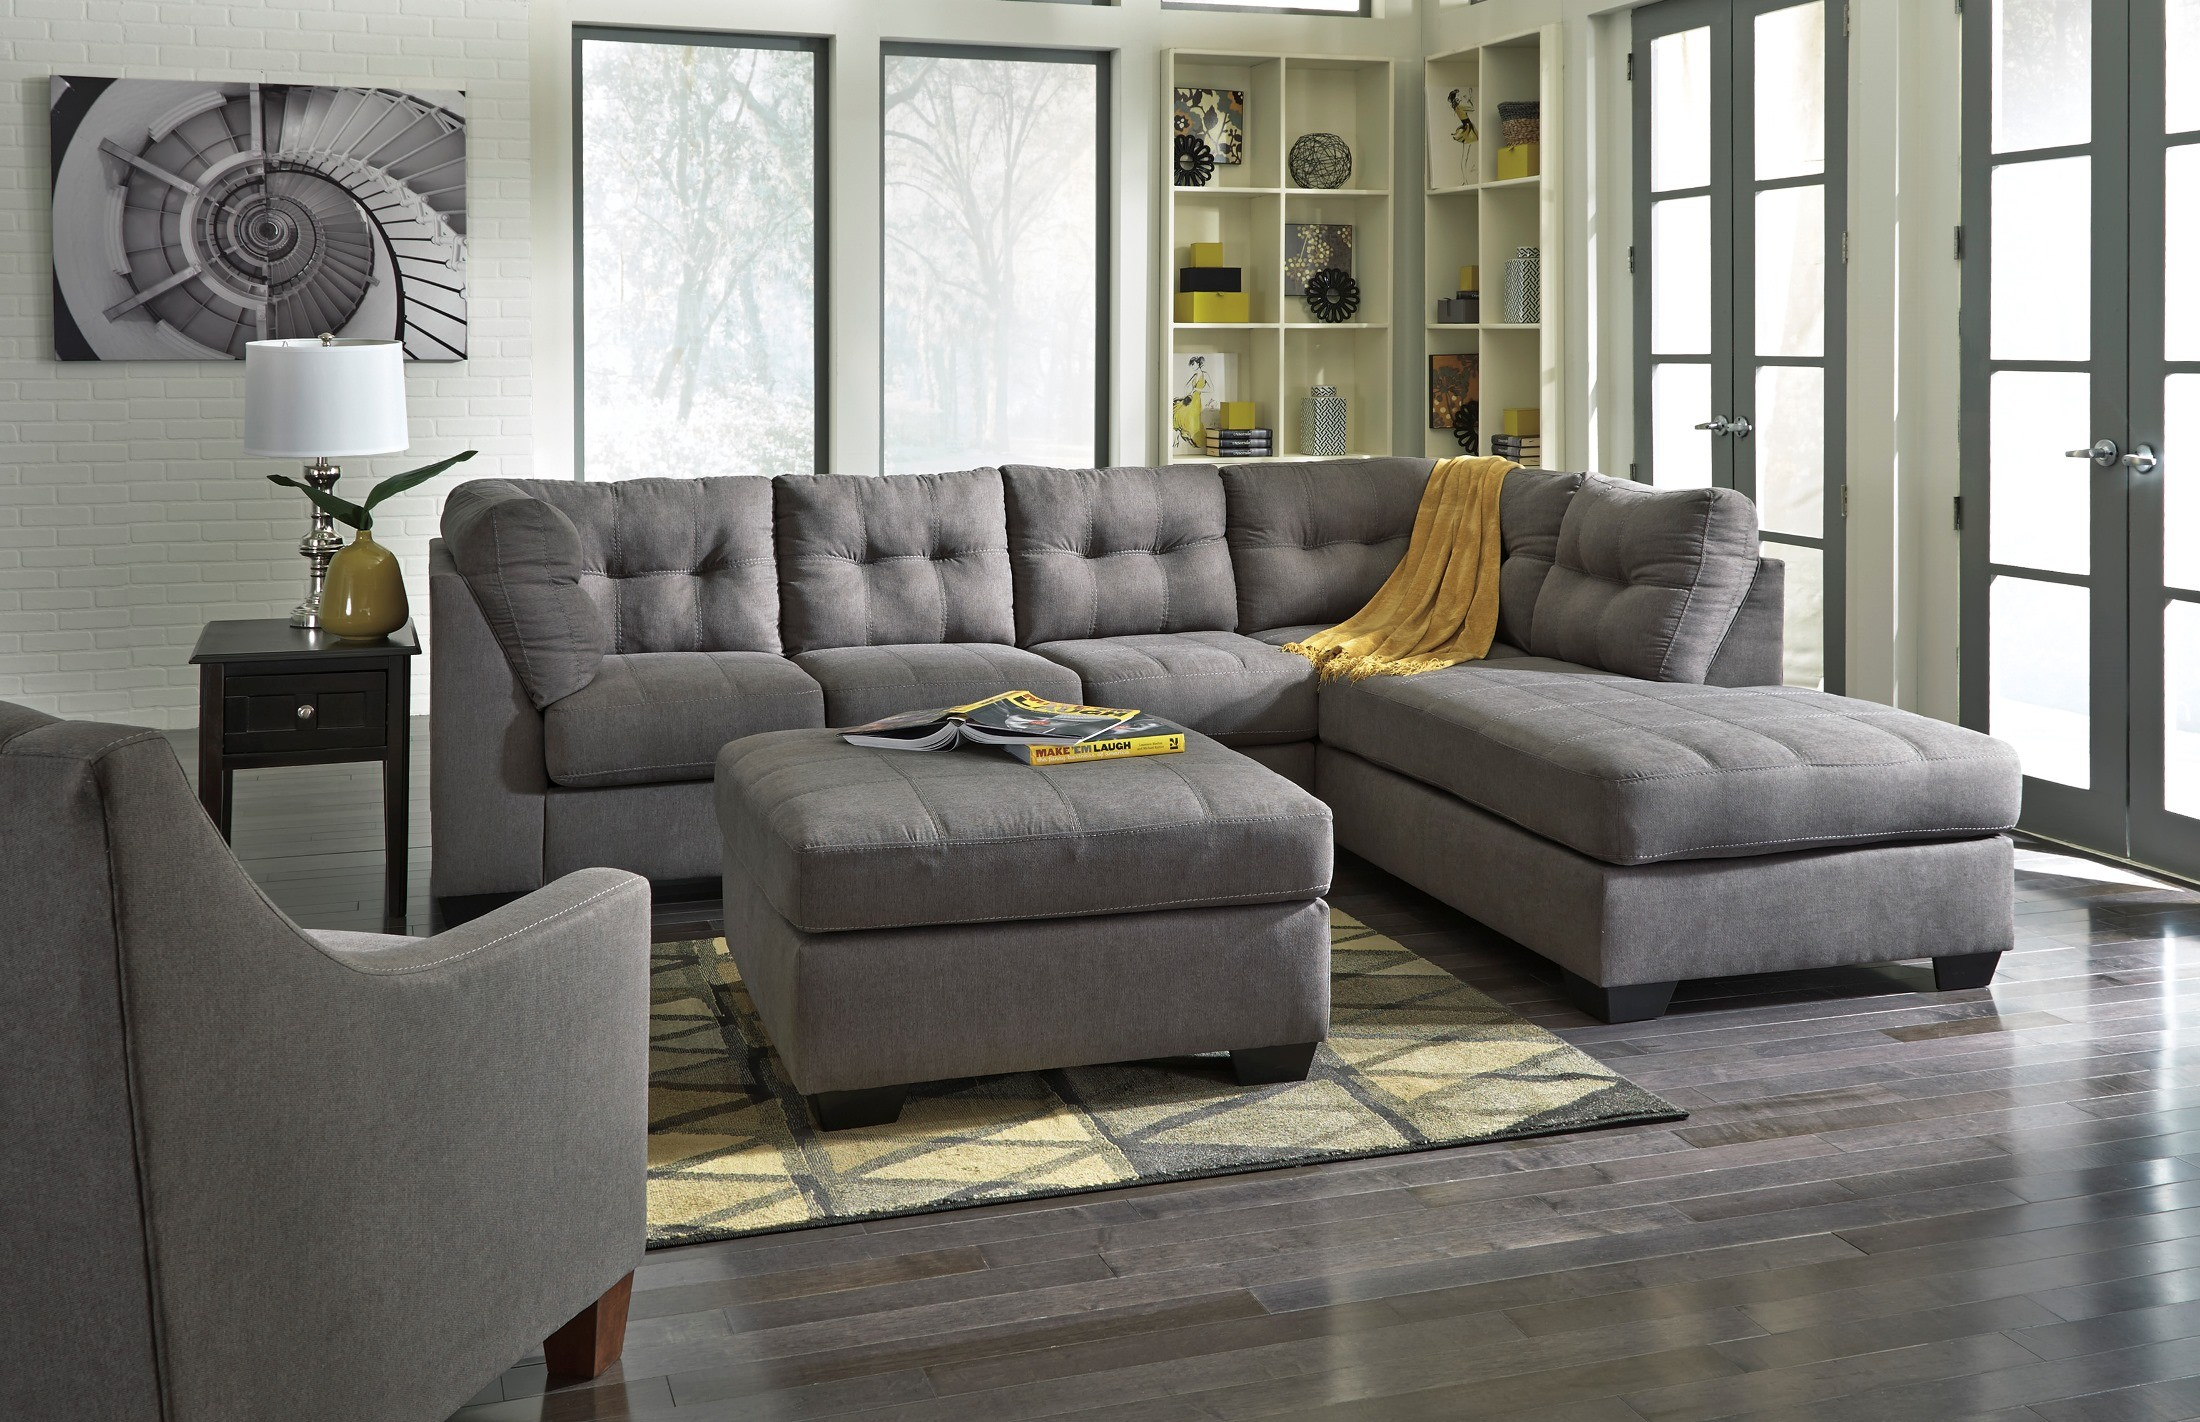 Maier Charcoal Oversized Accent Ottoman from Ashley